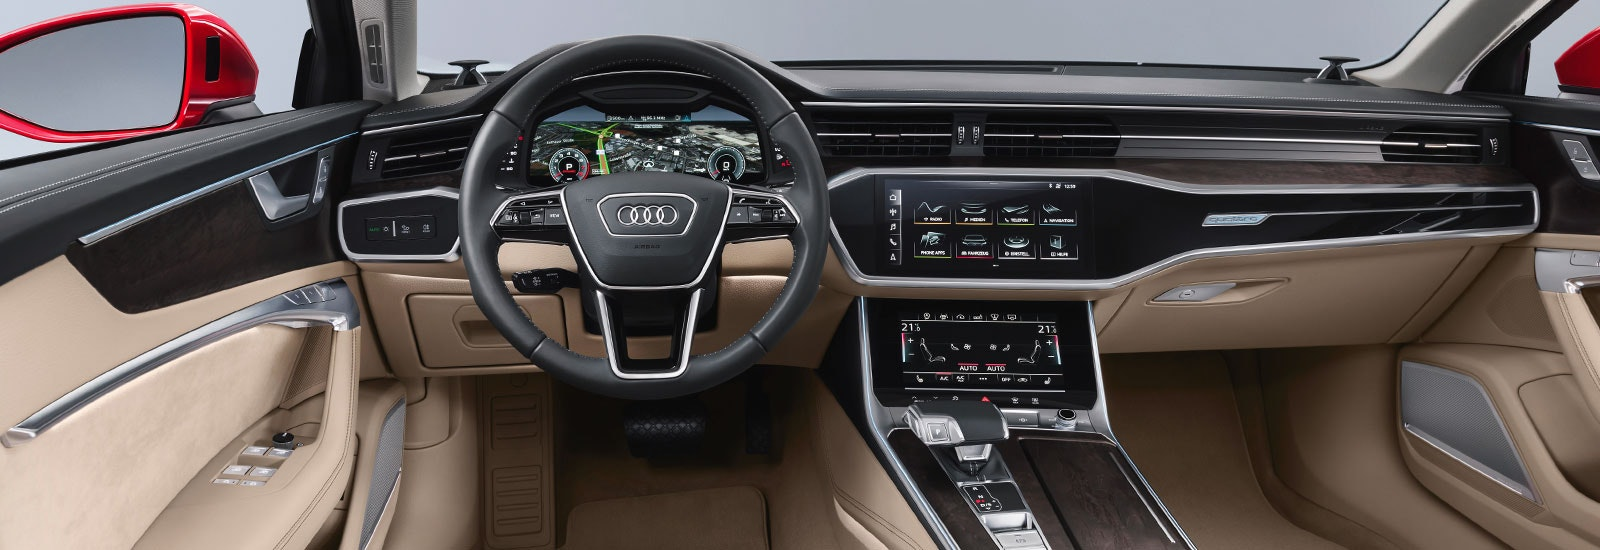 2018 19 Audi A6 Price Specs And Release Date Carwow